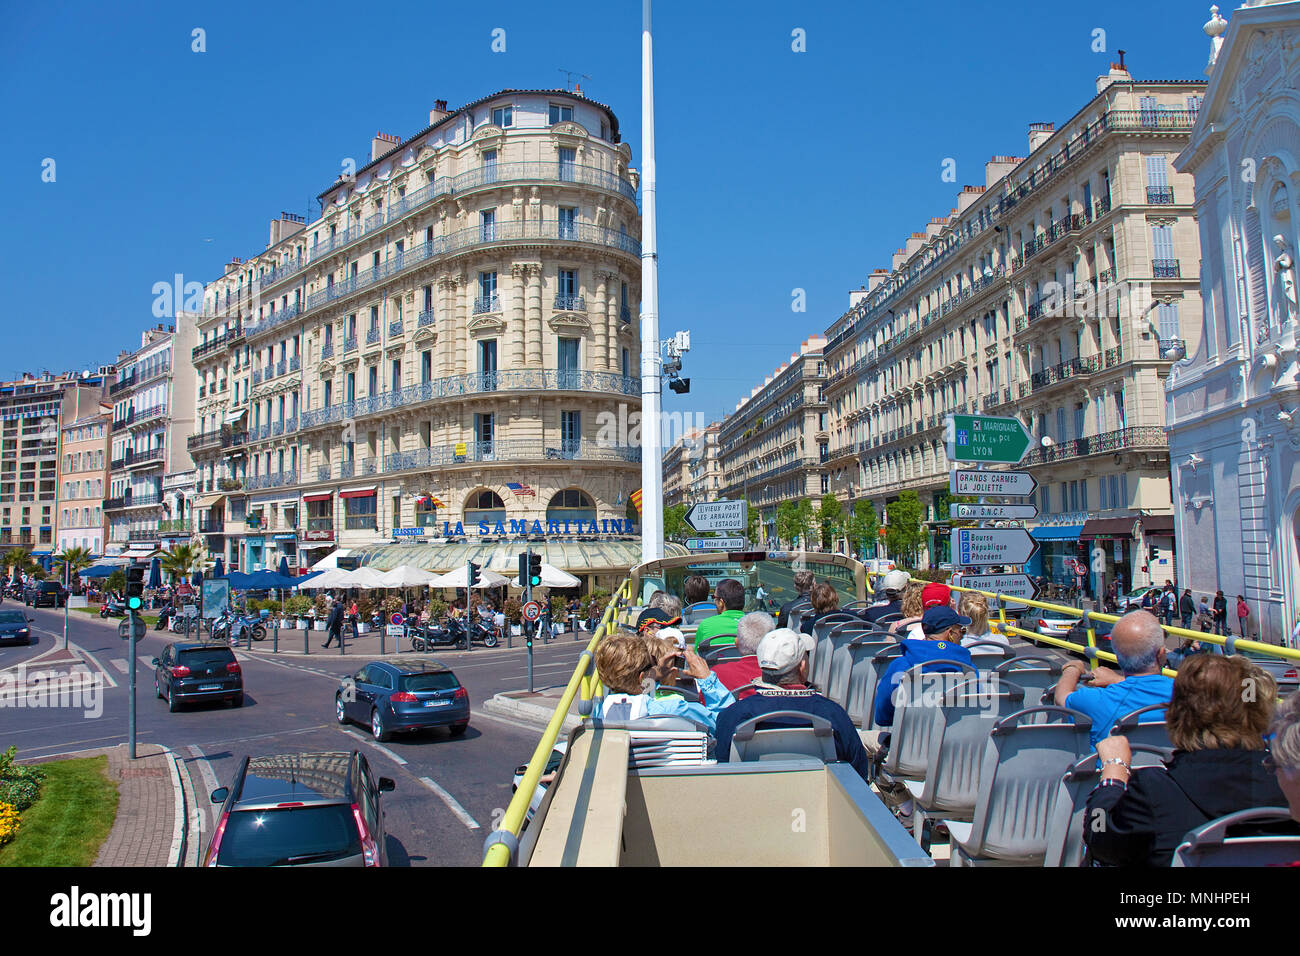 City tour, bus with tourists at Quai du port with restaurant La Samaritaine at the old harbour Vieux Port, Marseille, Bouches-du-Rhone, France - Stock Image